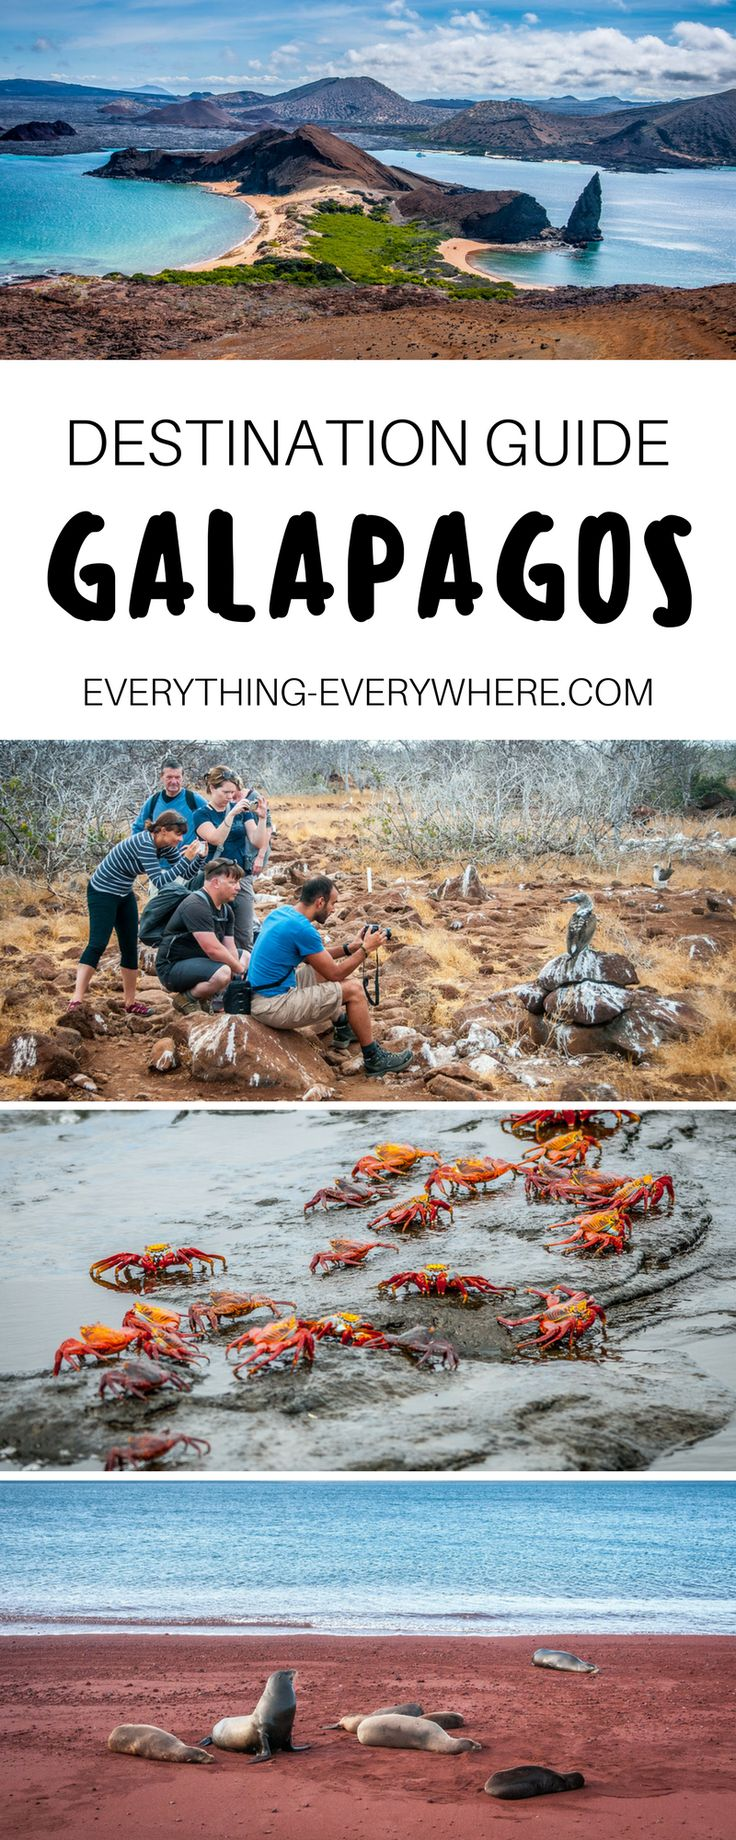 The ultimate guide to planning your trip to the Galapagos Islands, a world renowned UNESCO site located off the coast of Ecuador. Things to see and do + practical tips relating to airports, visas, and currency. Travel in South America. | Everything Everyw